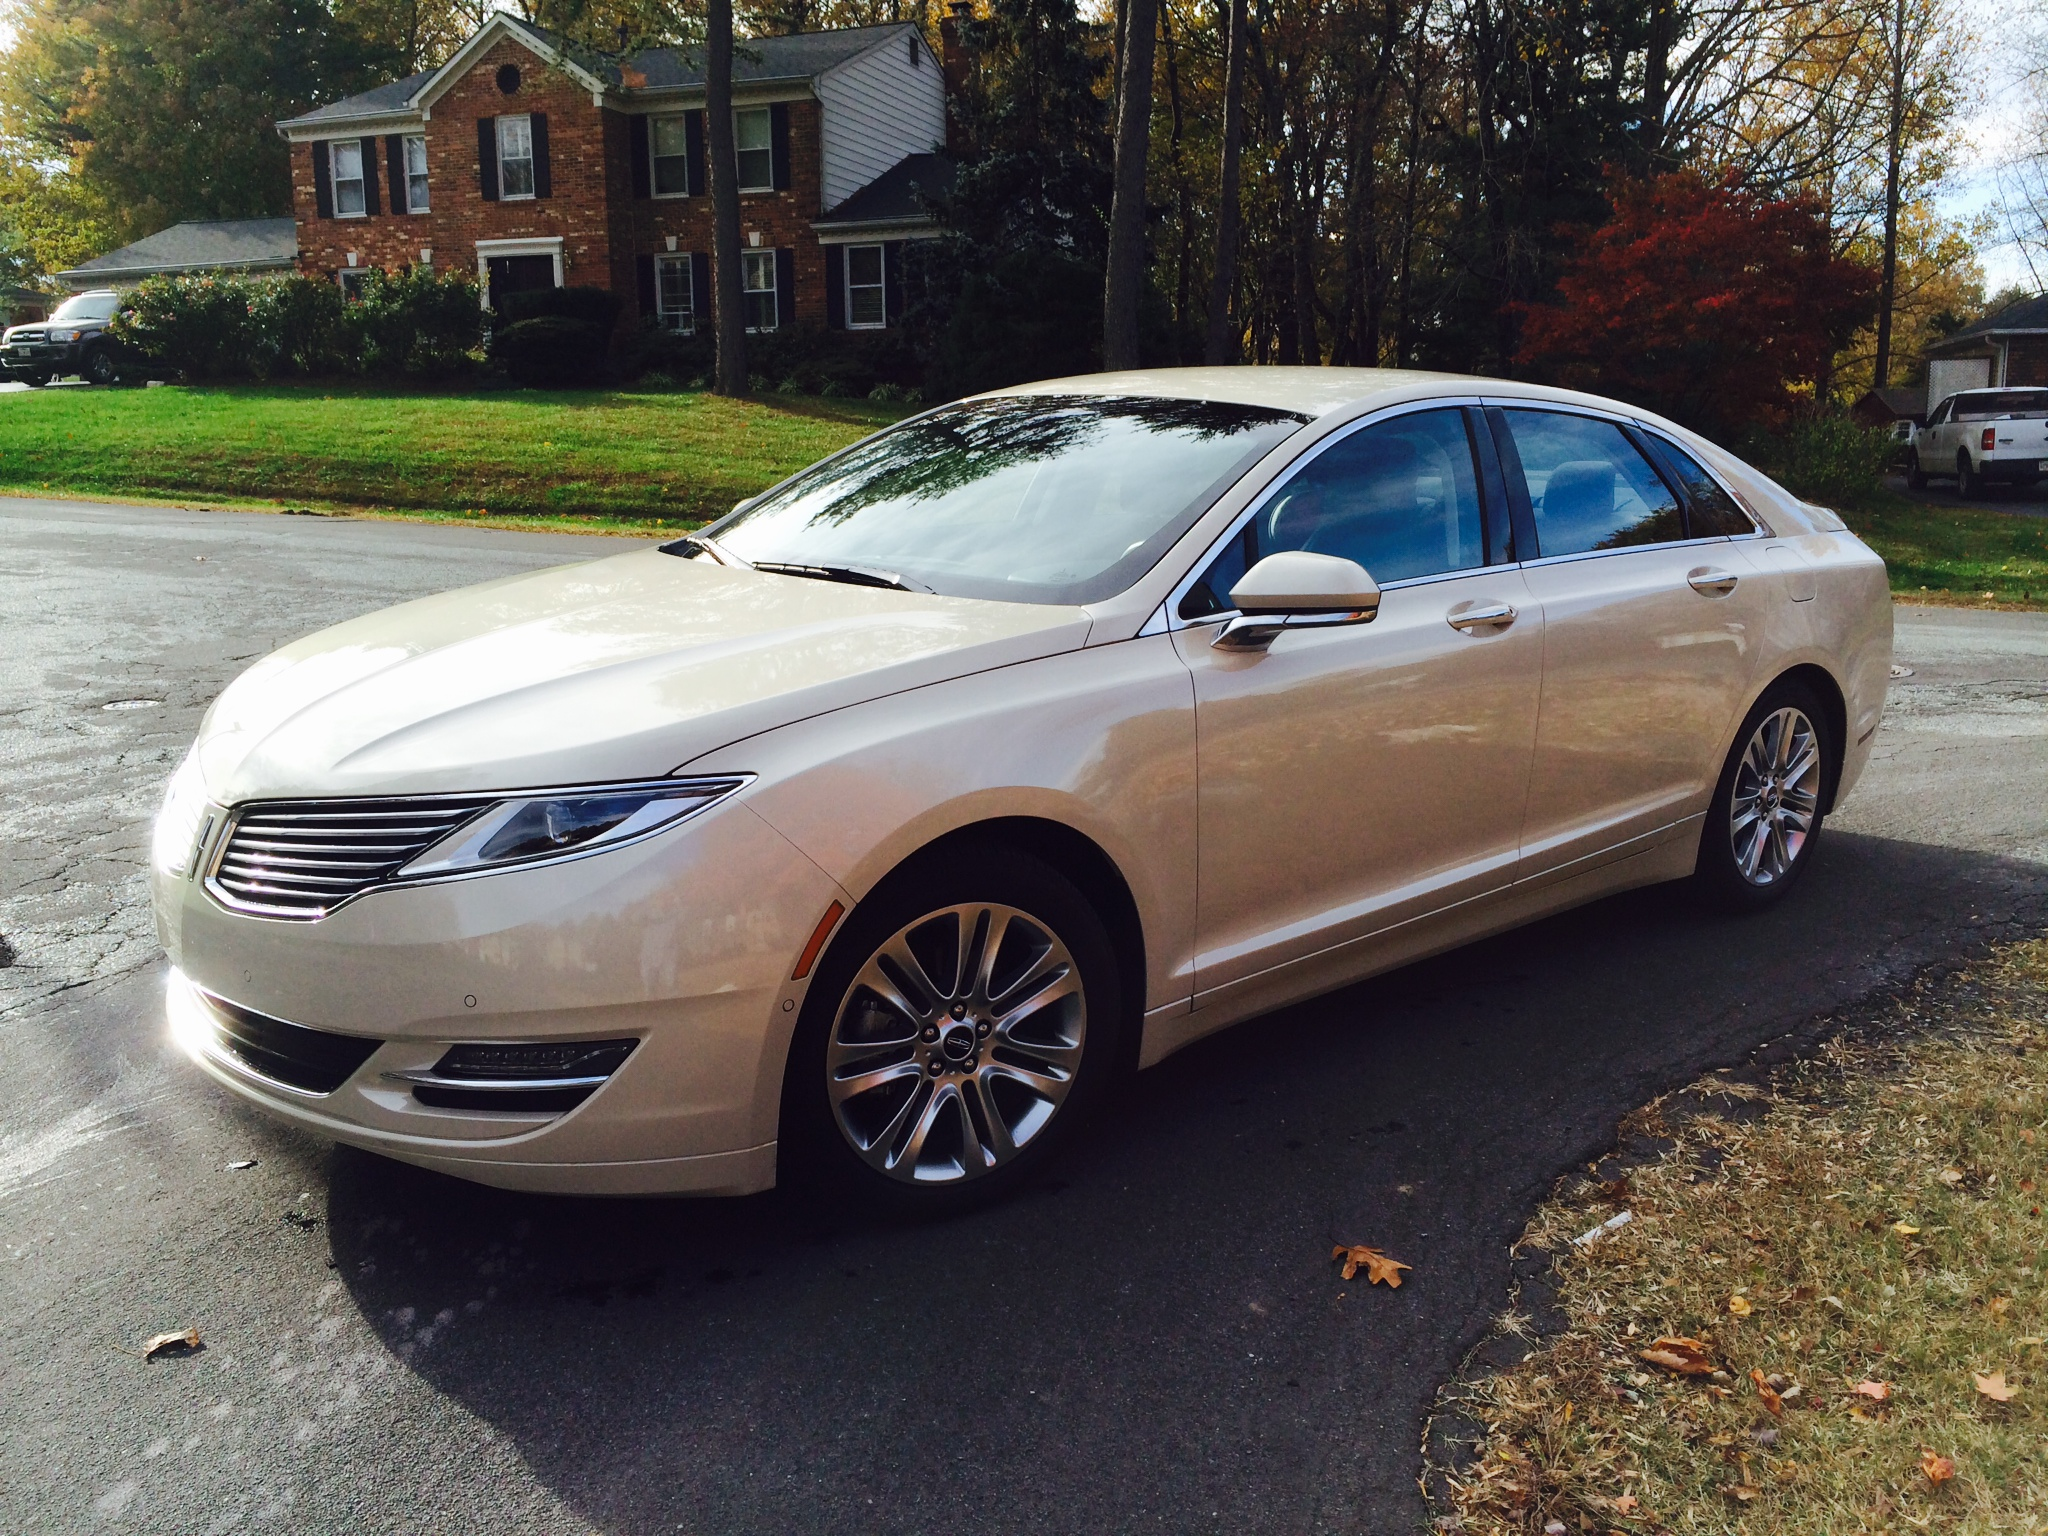 Car Report: Lincoln MKZ Hybrid is a stylish way to save at the pump